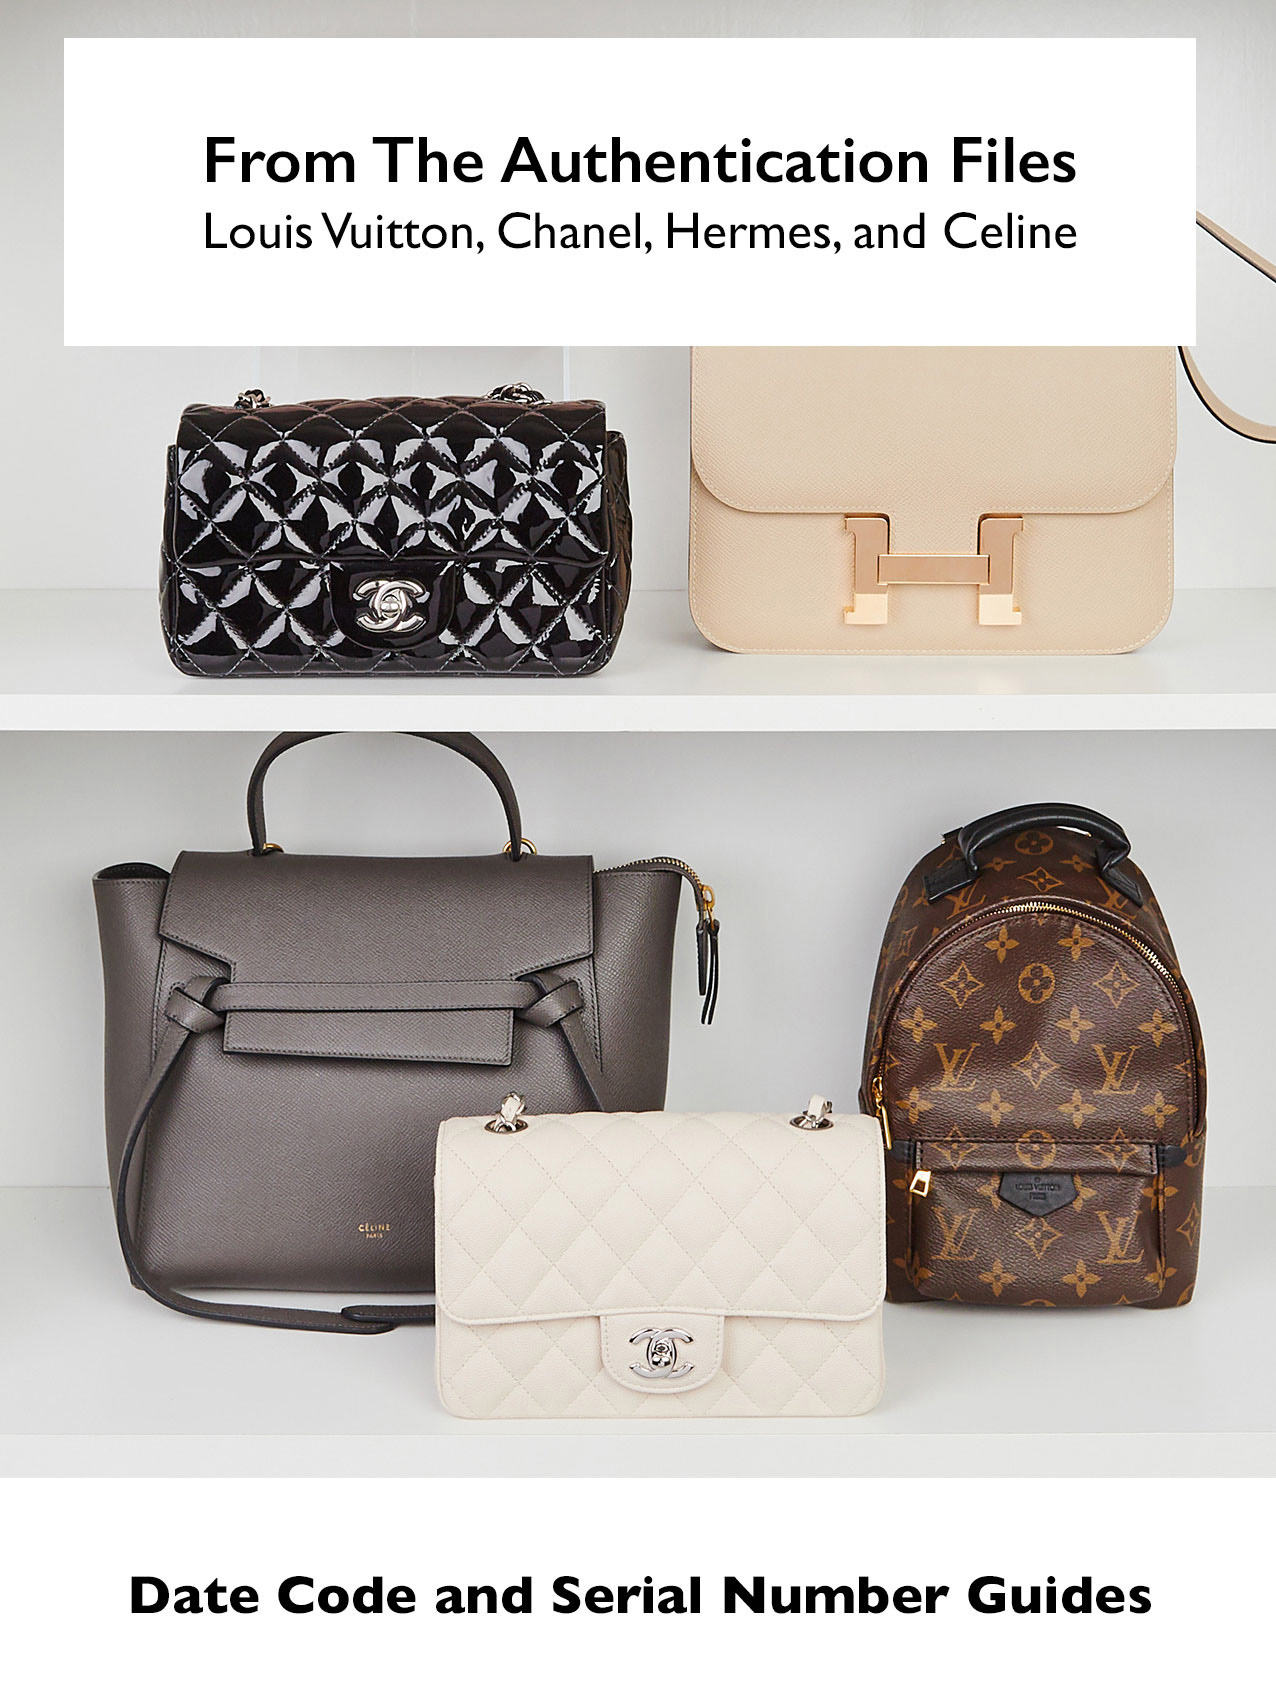 3a3d35e3295 Yoogi's Closet: How To Read LV, Chanel, Hermes, Celine Date Codes ...